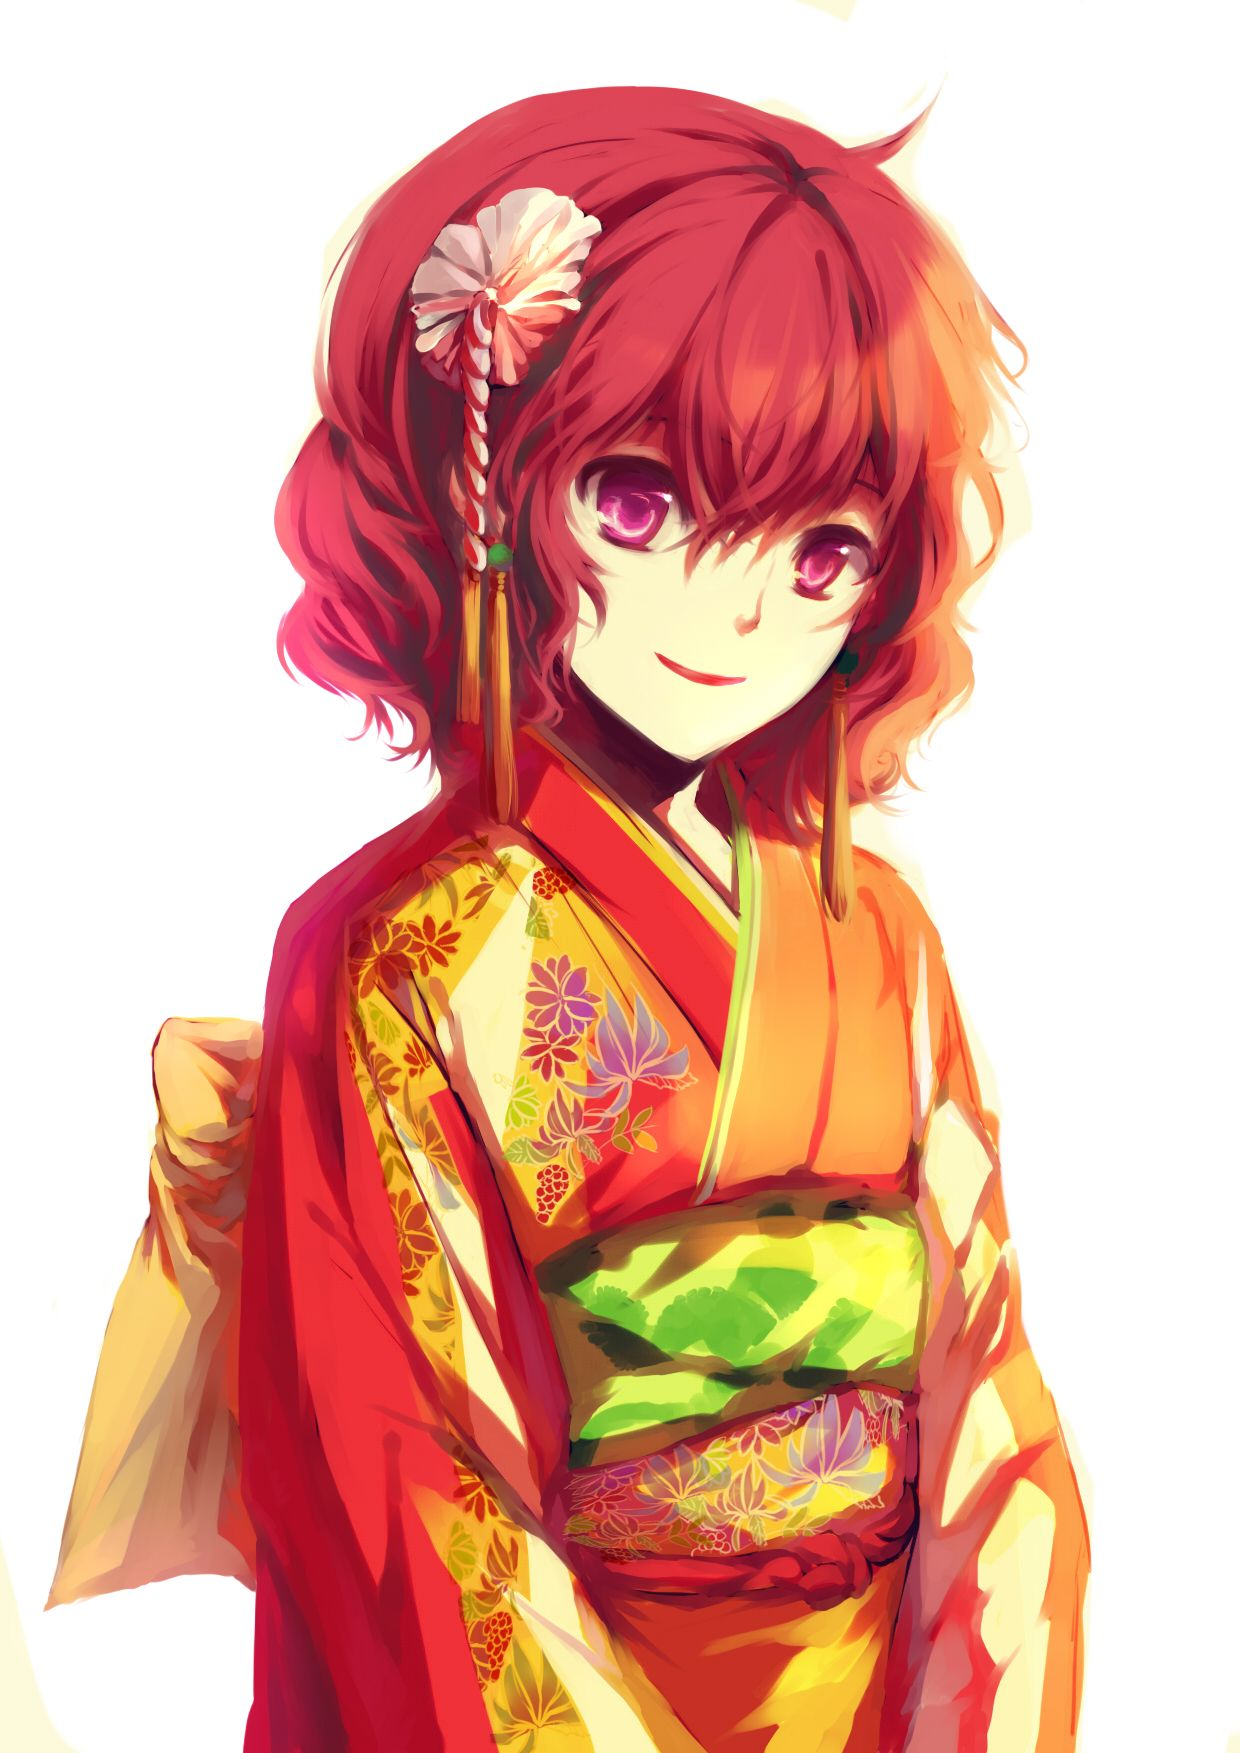 Tags Akatsuki no Yona, Yona (Akatsuki no Yona), Happy